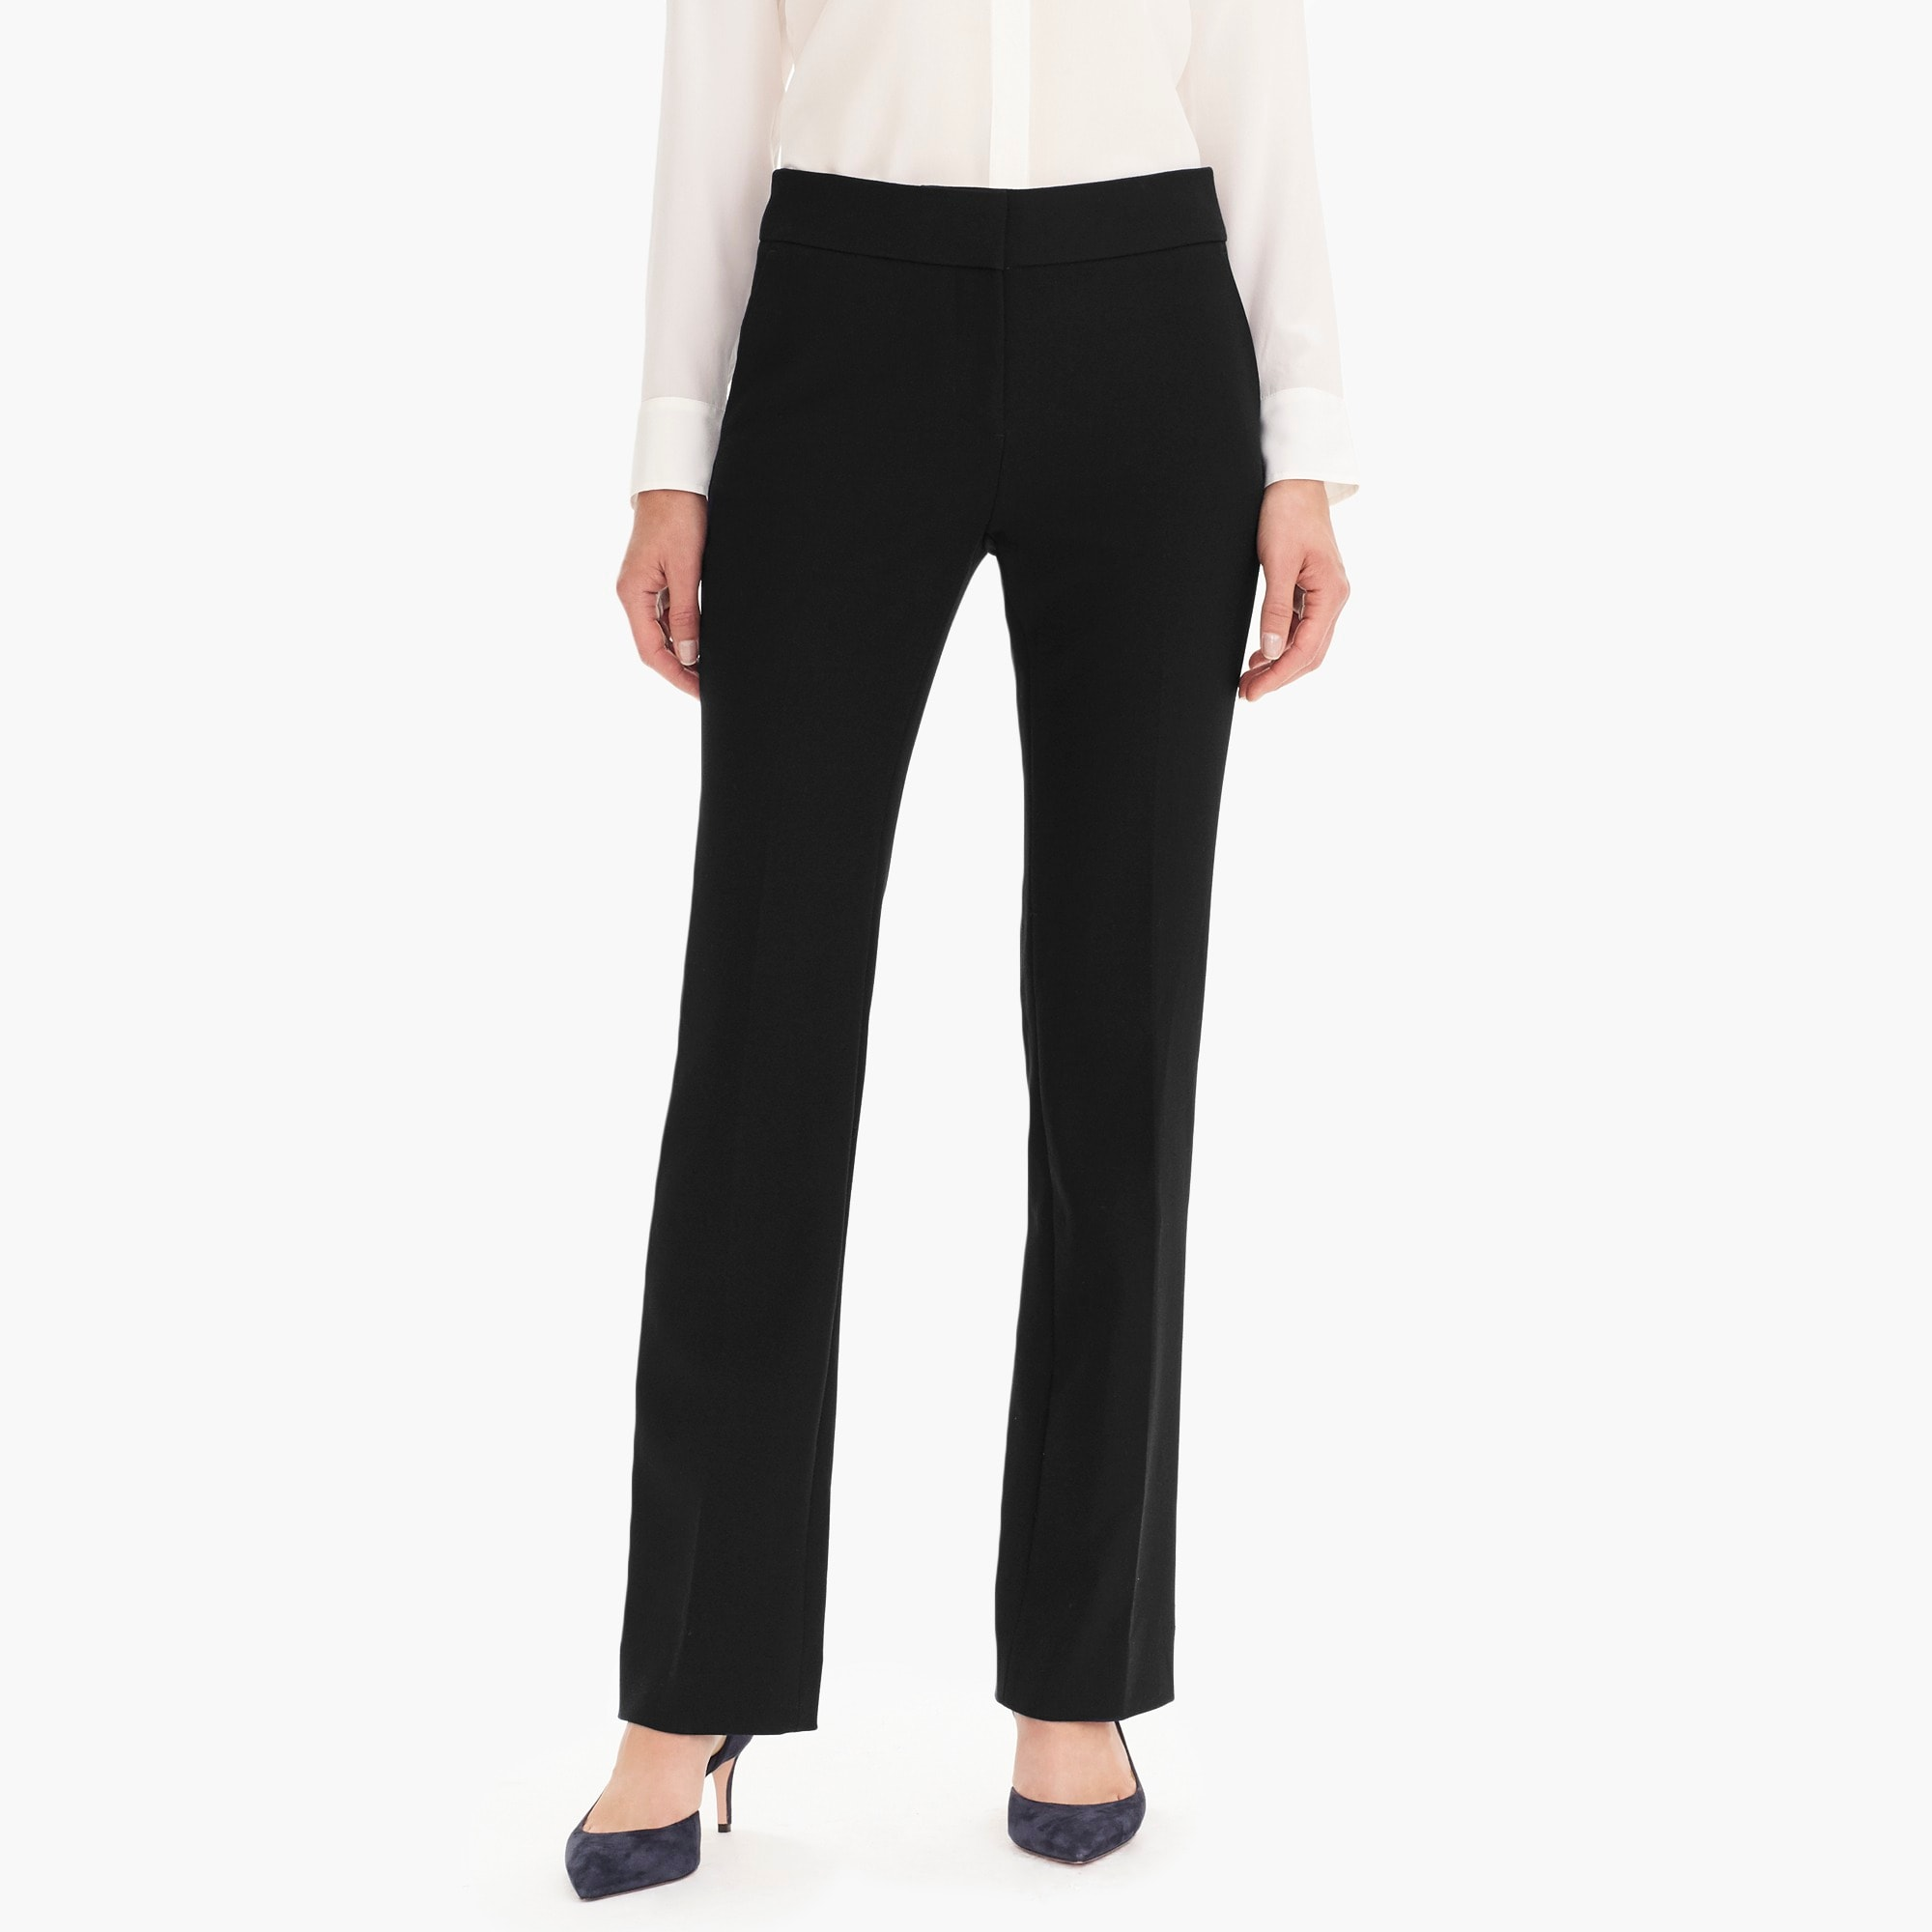 Image 4 for Edie full-length trouser in four-season stretch